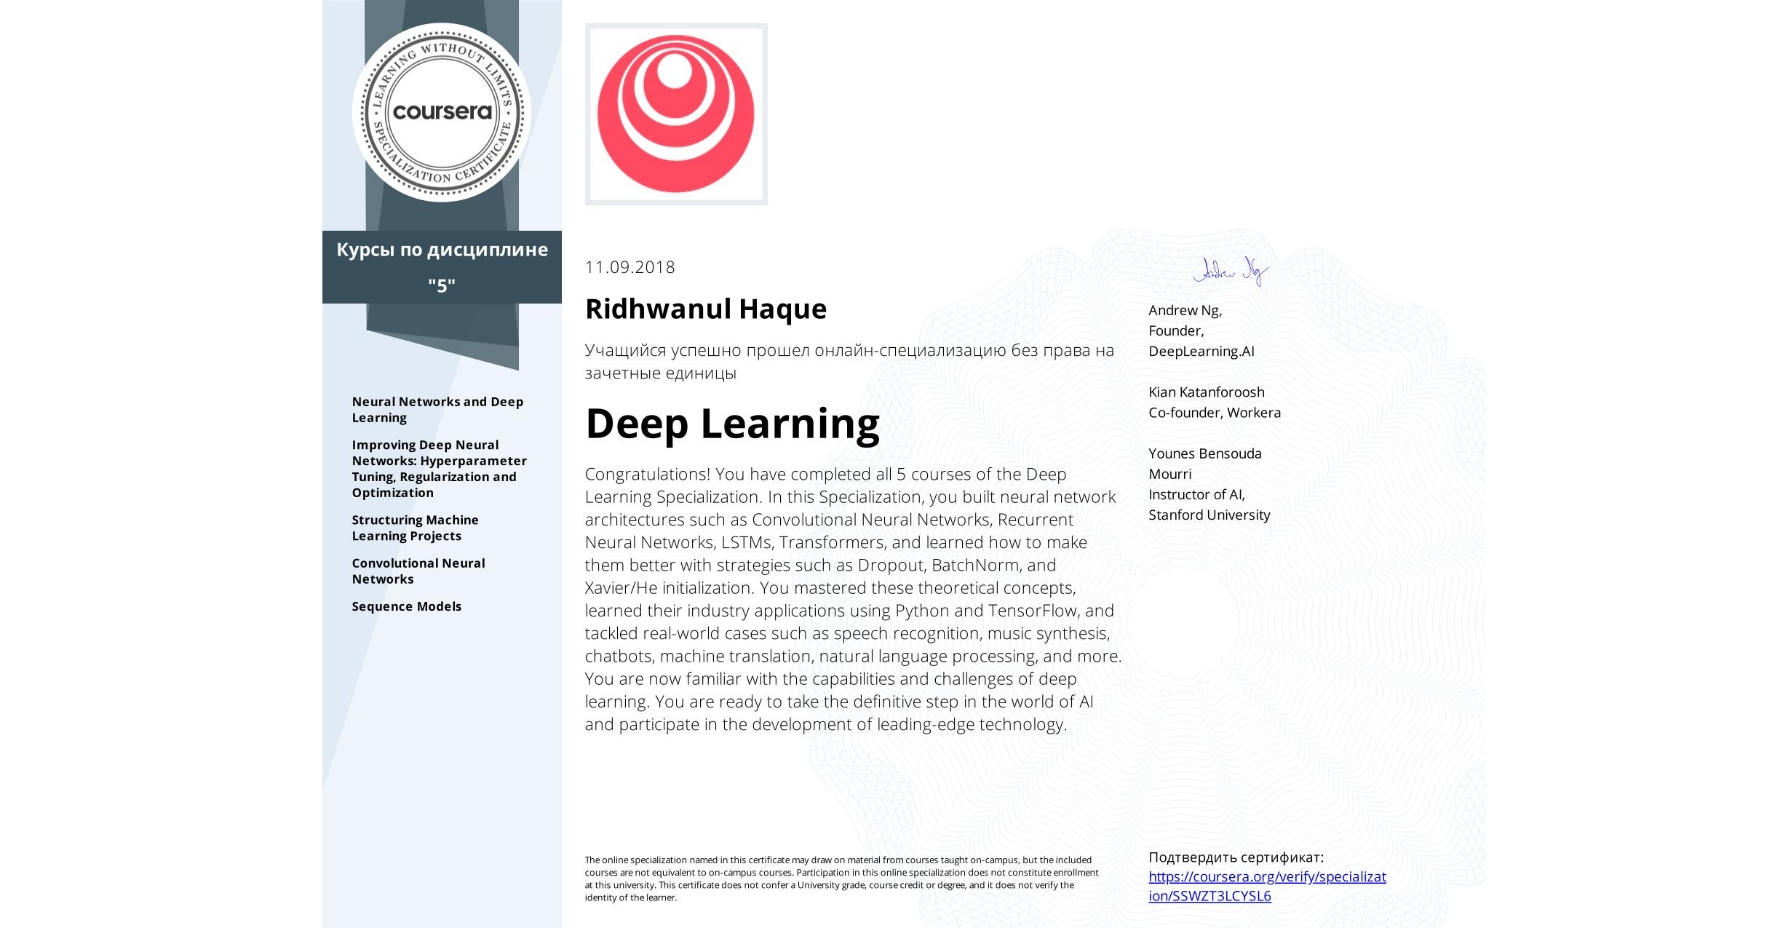 View certificate for Ridhwanul Haque, Deep Learning, offered through Coursera. The Deep Learning Specialization is designed to prepare learners to participate in the development of cutting-edge AI technology, and to understand the capability, the challenges, and the consequences of the rise of deep learning. Through five interconnected courses, learners develop a profound knowledge of the hottest AI algorithms, mastering deep learning from its foundations (neural networks) to its industry applications (Computer Vision, Natural Language Processing, Speech Recognition, etc.).